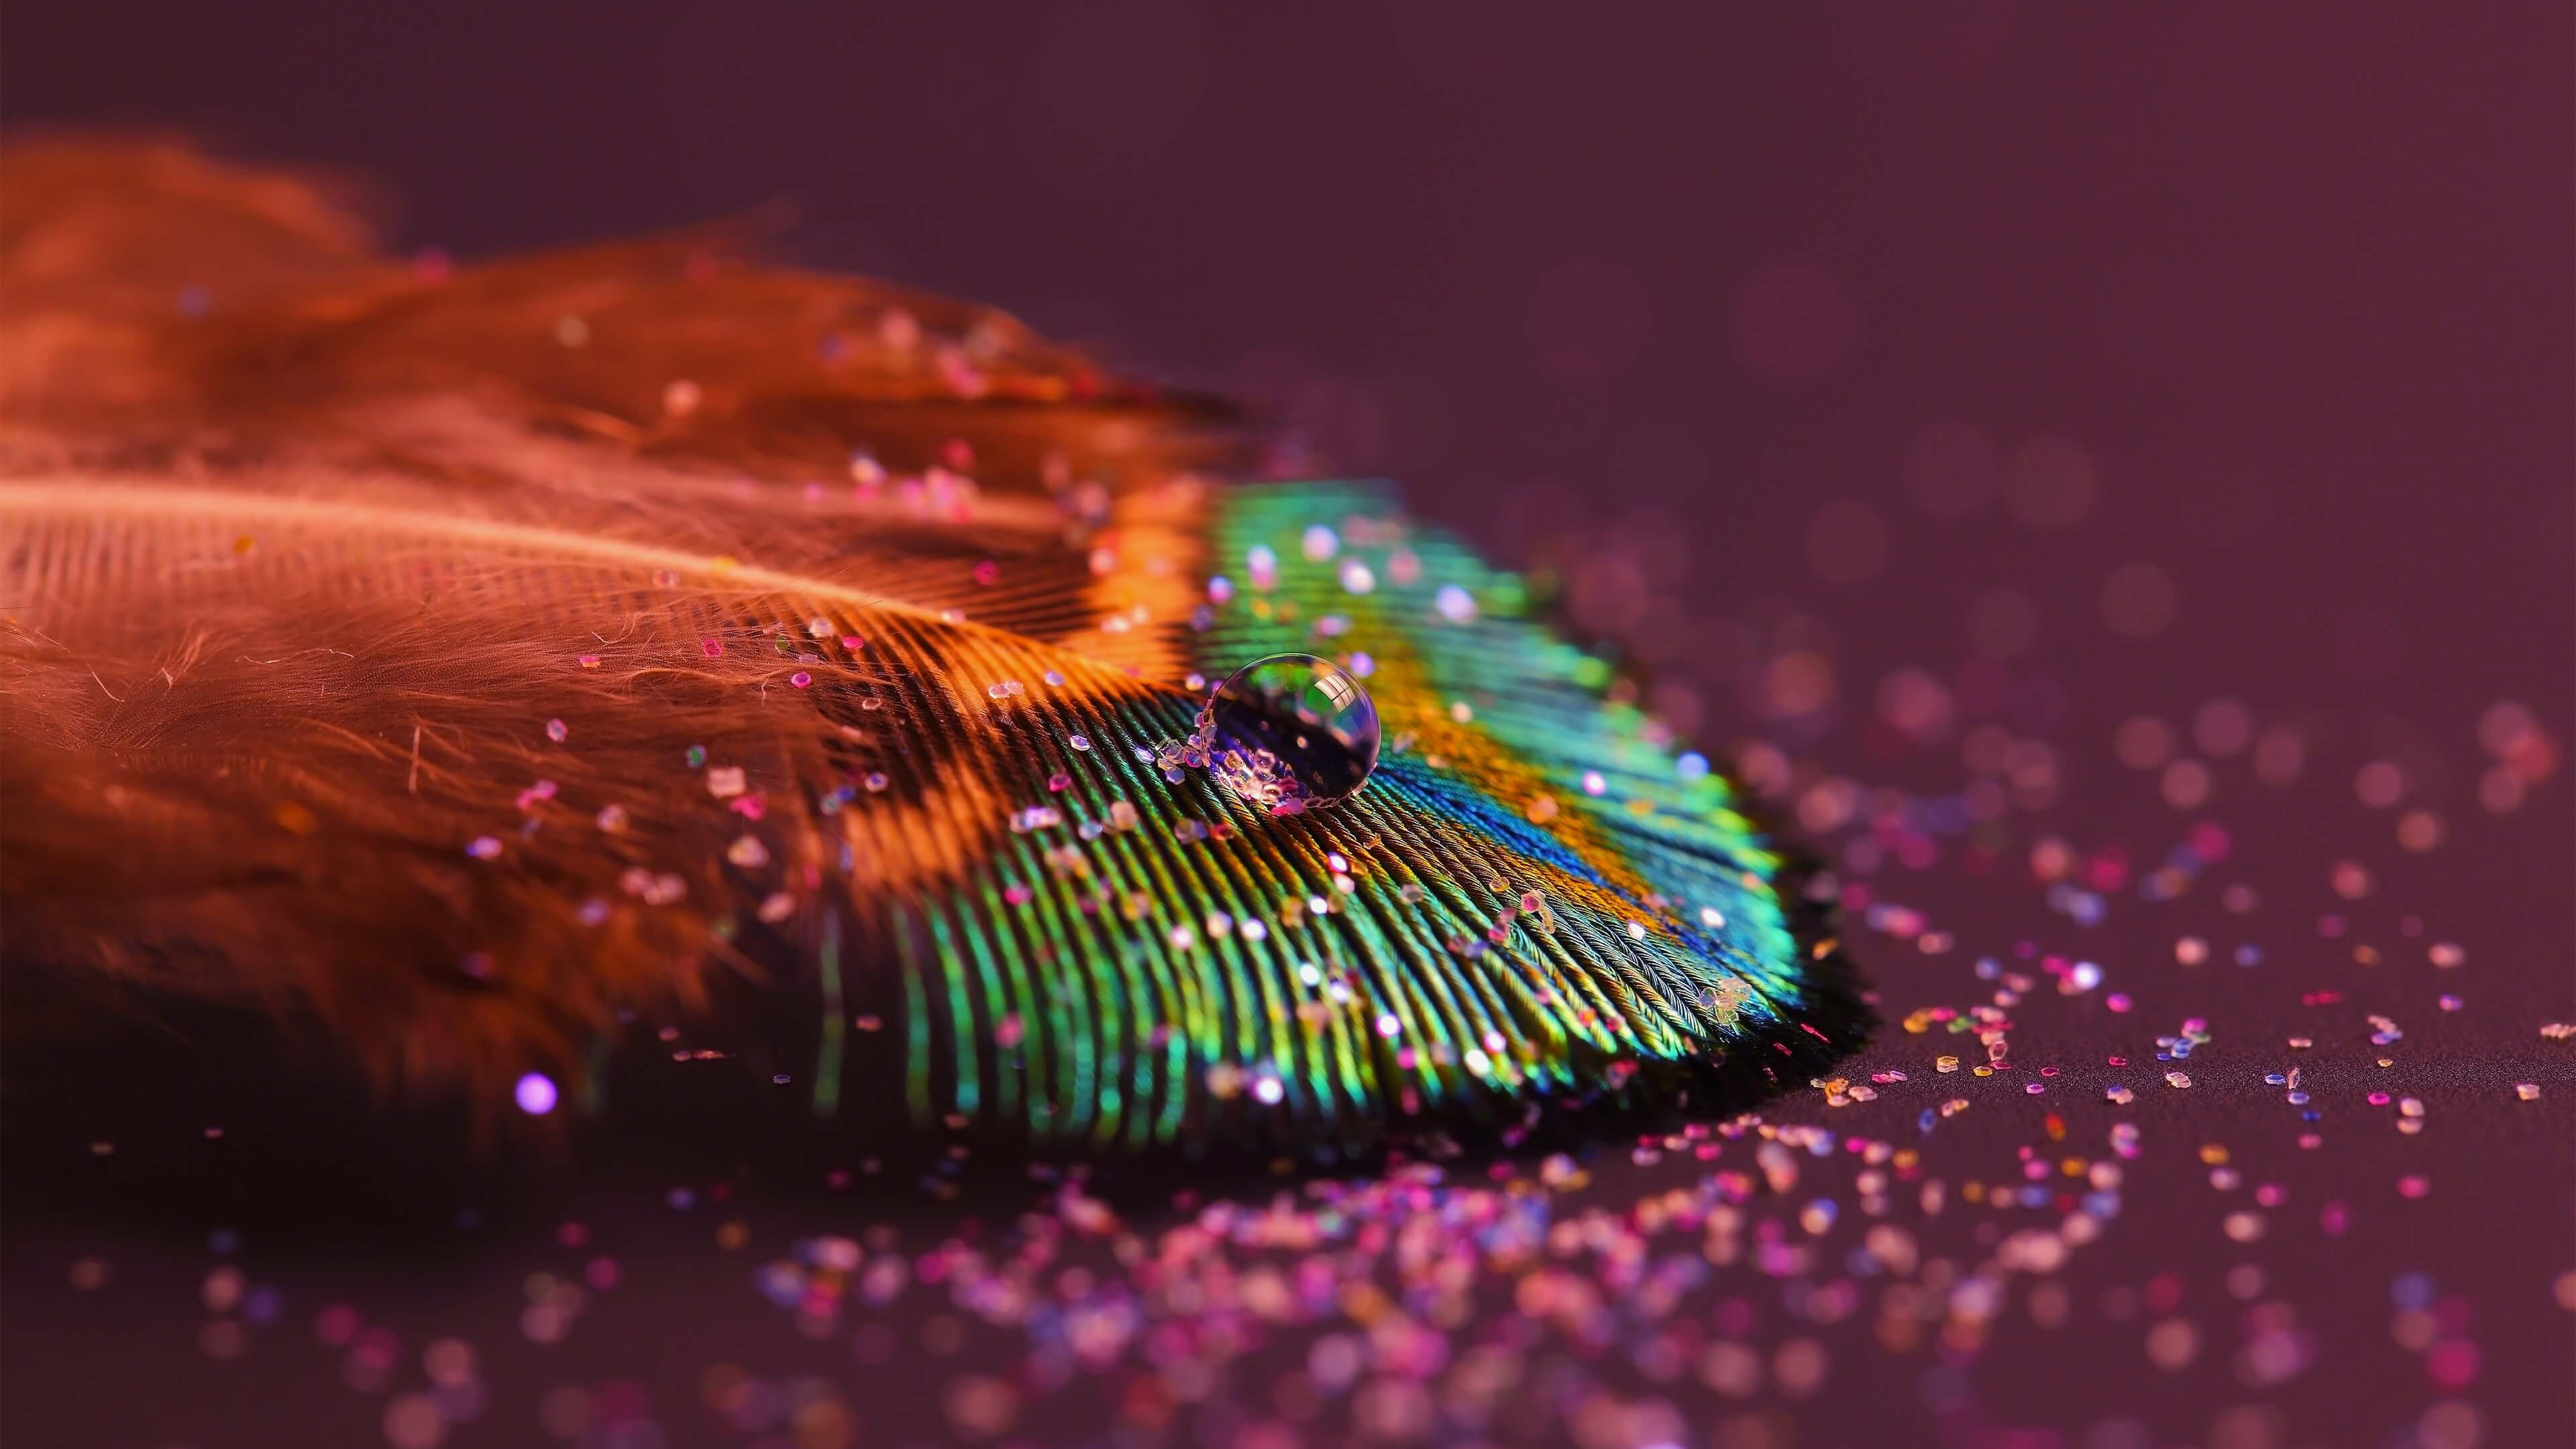 Colorful Feather HD wallpaper for 4K 3840 x 2160   HDwallpapersnet 3840x2160